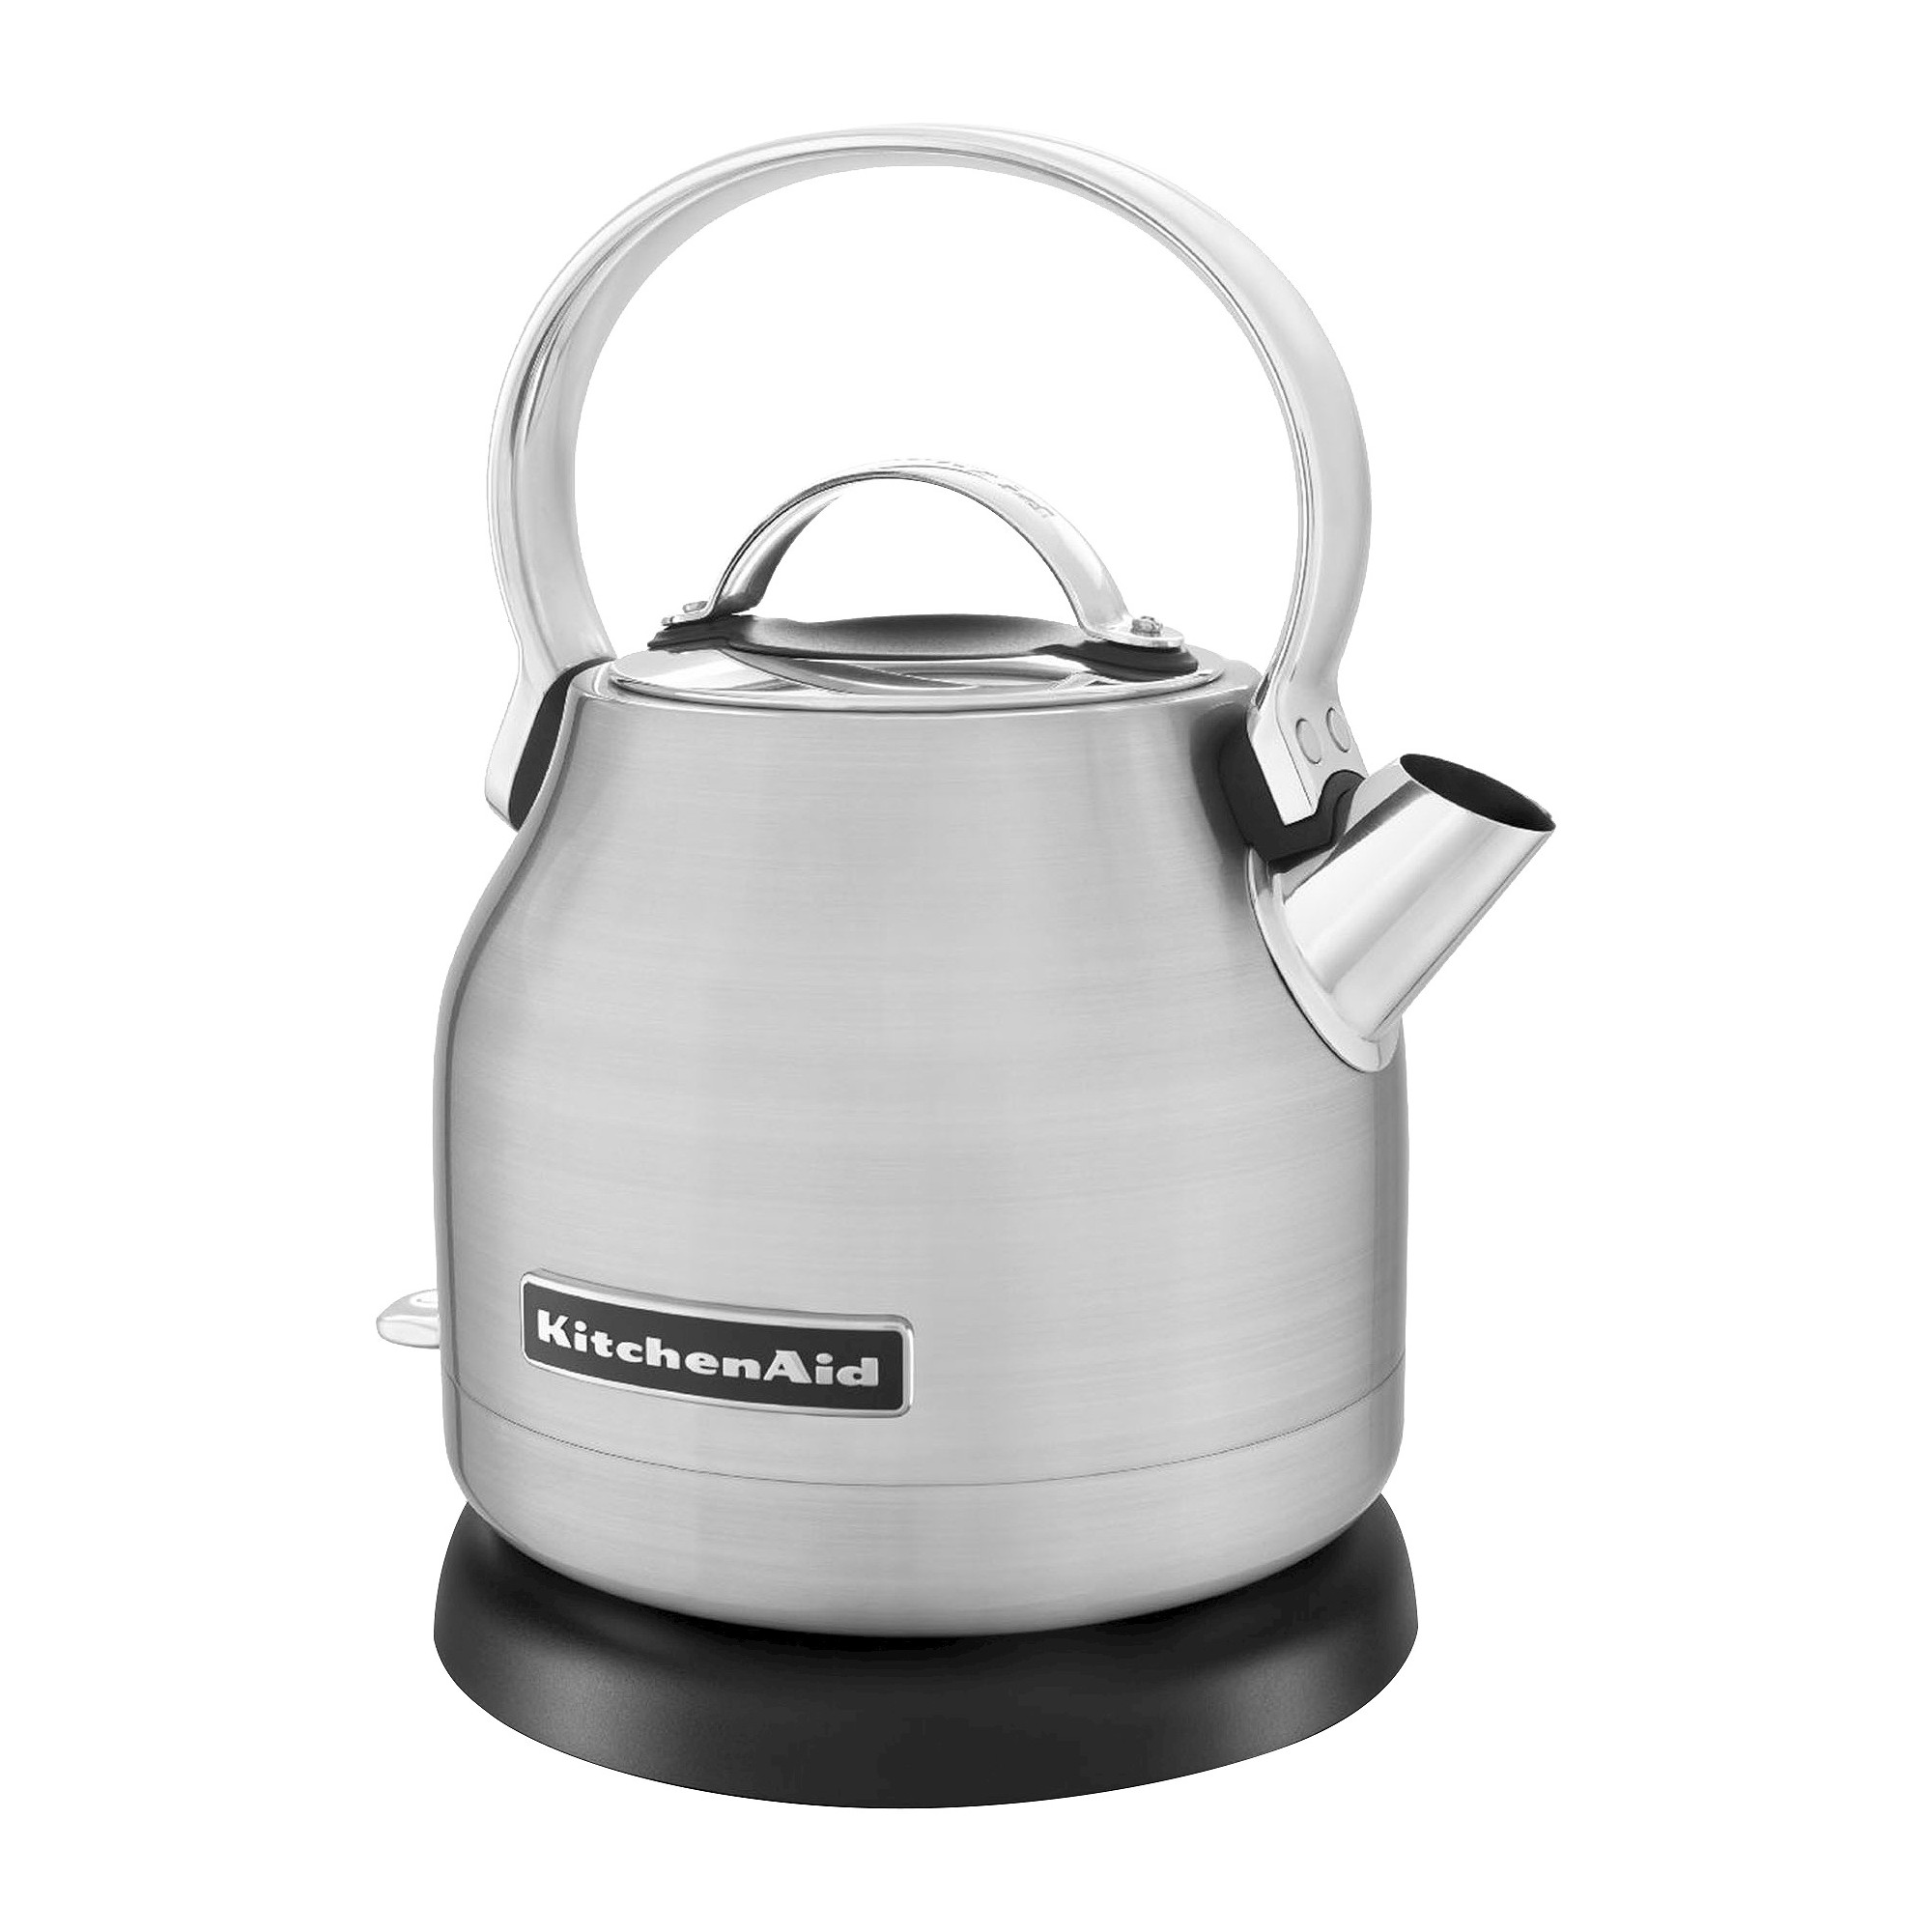 KitchenAid 1.25 Liter Electric Kettle KEK1222, Silver in